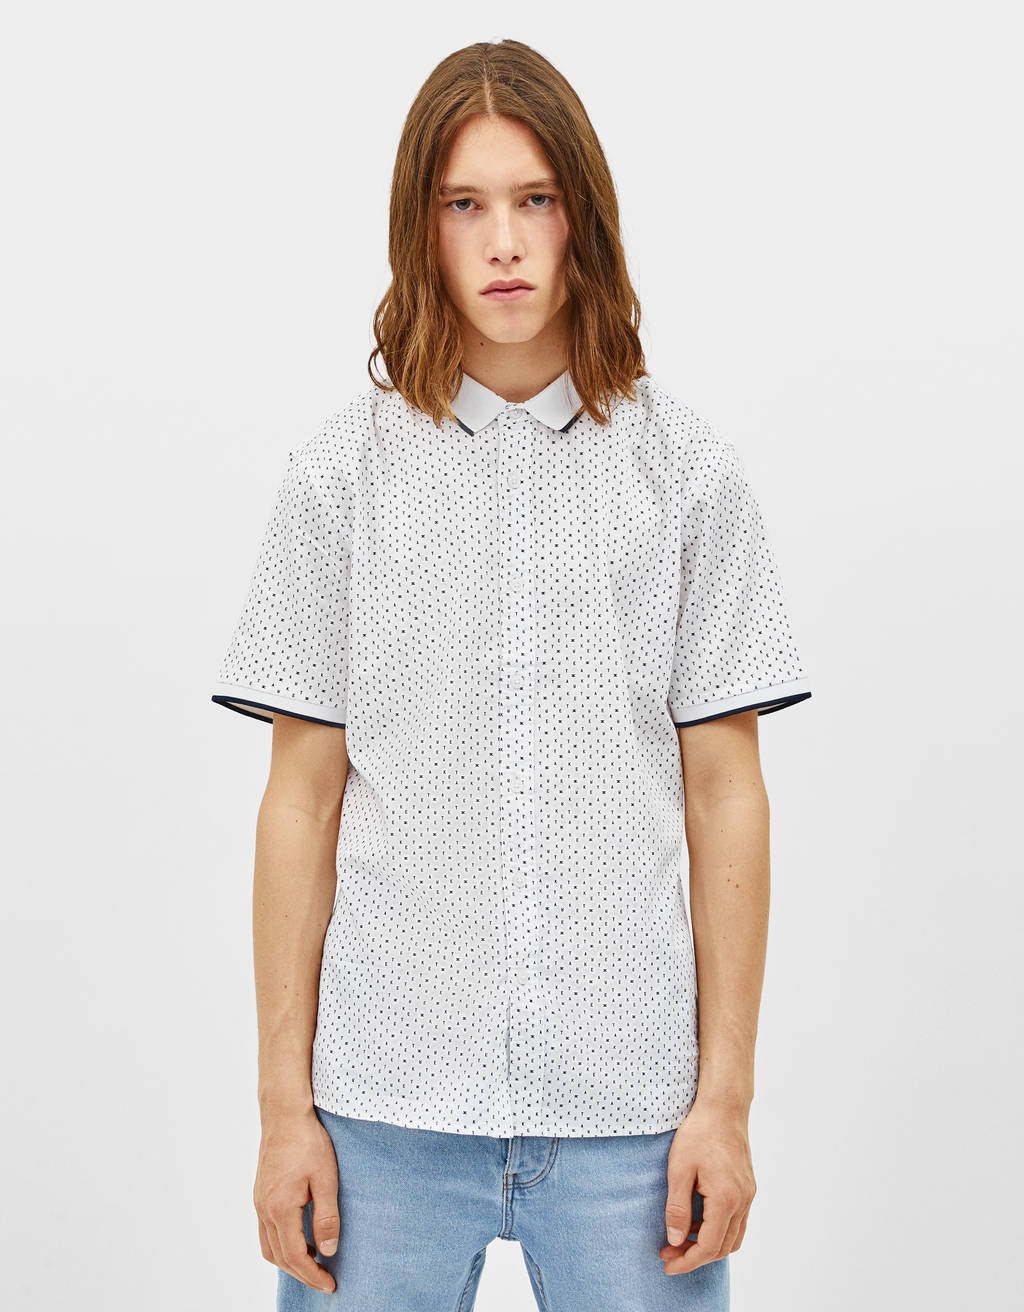 Polo collar shirt